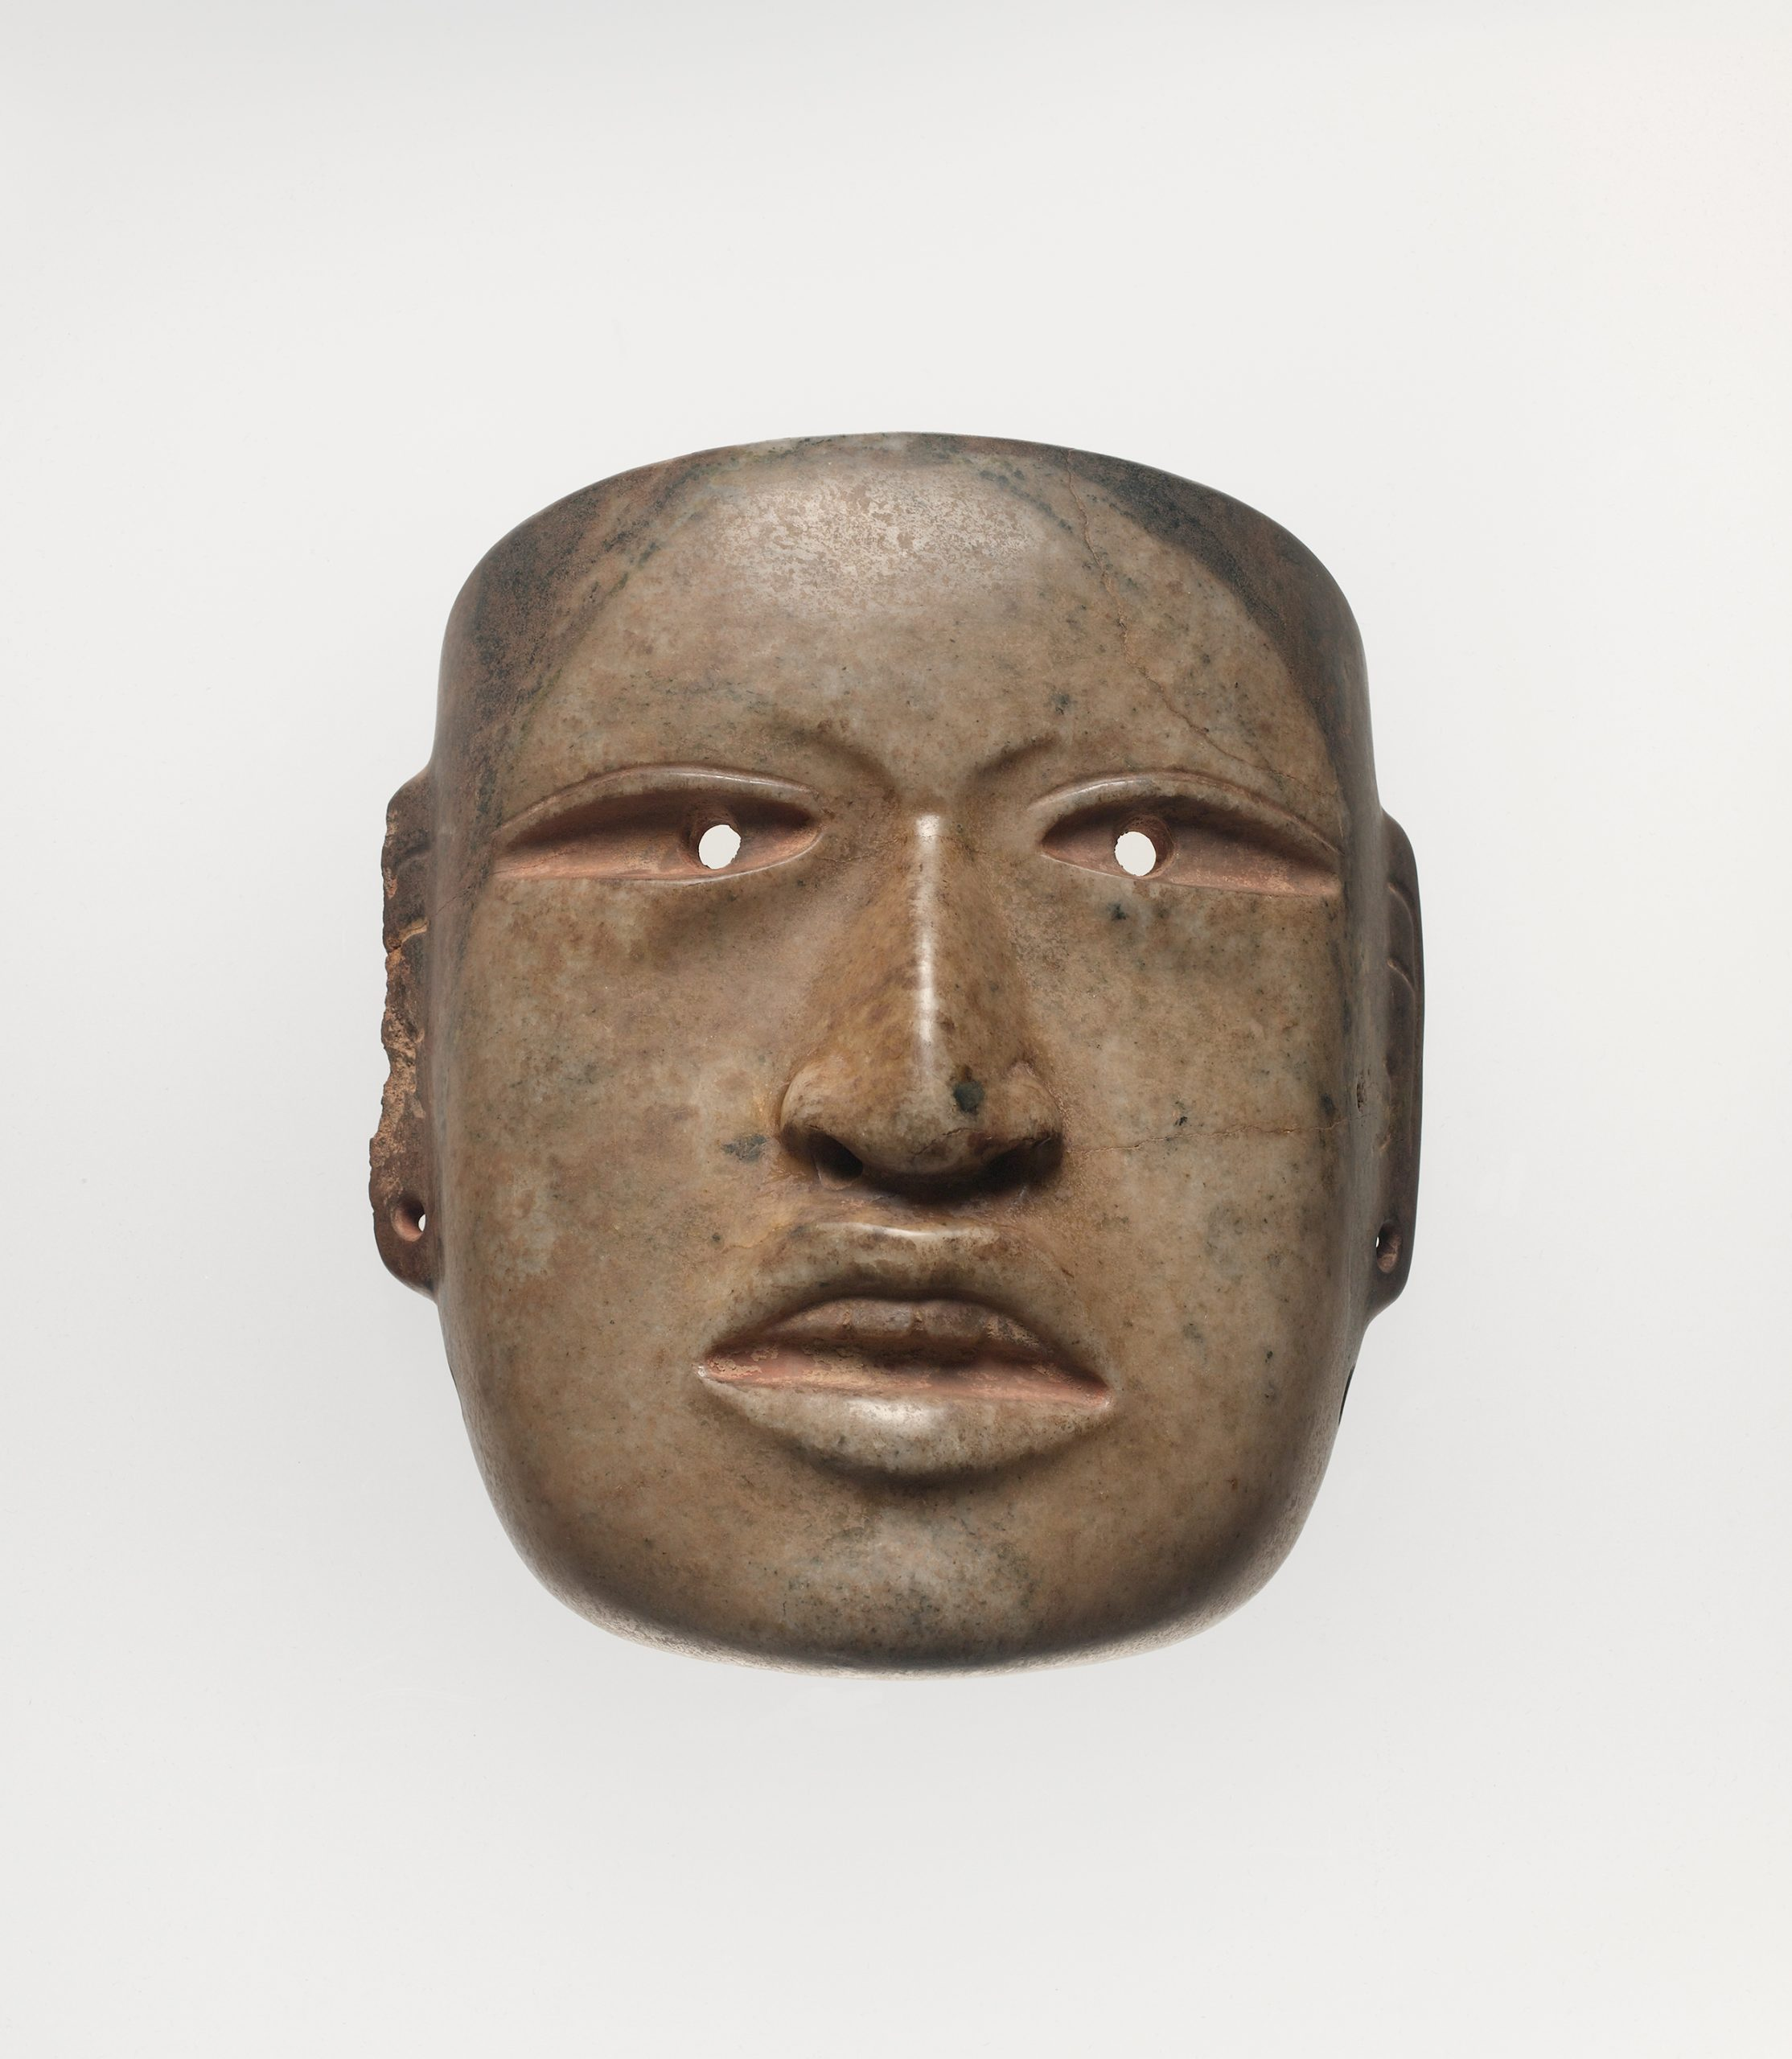 Ritualistic face mask with drilled eyes and ear spools, and a naturalistic mouth open to expose top teeth.